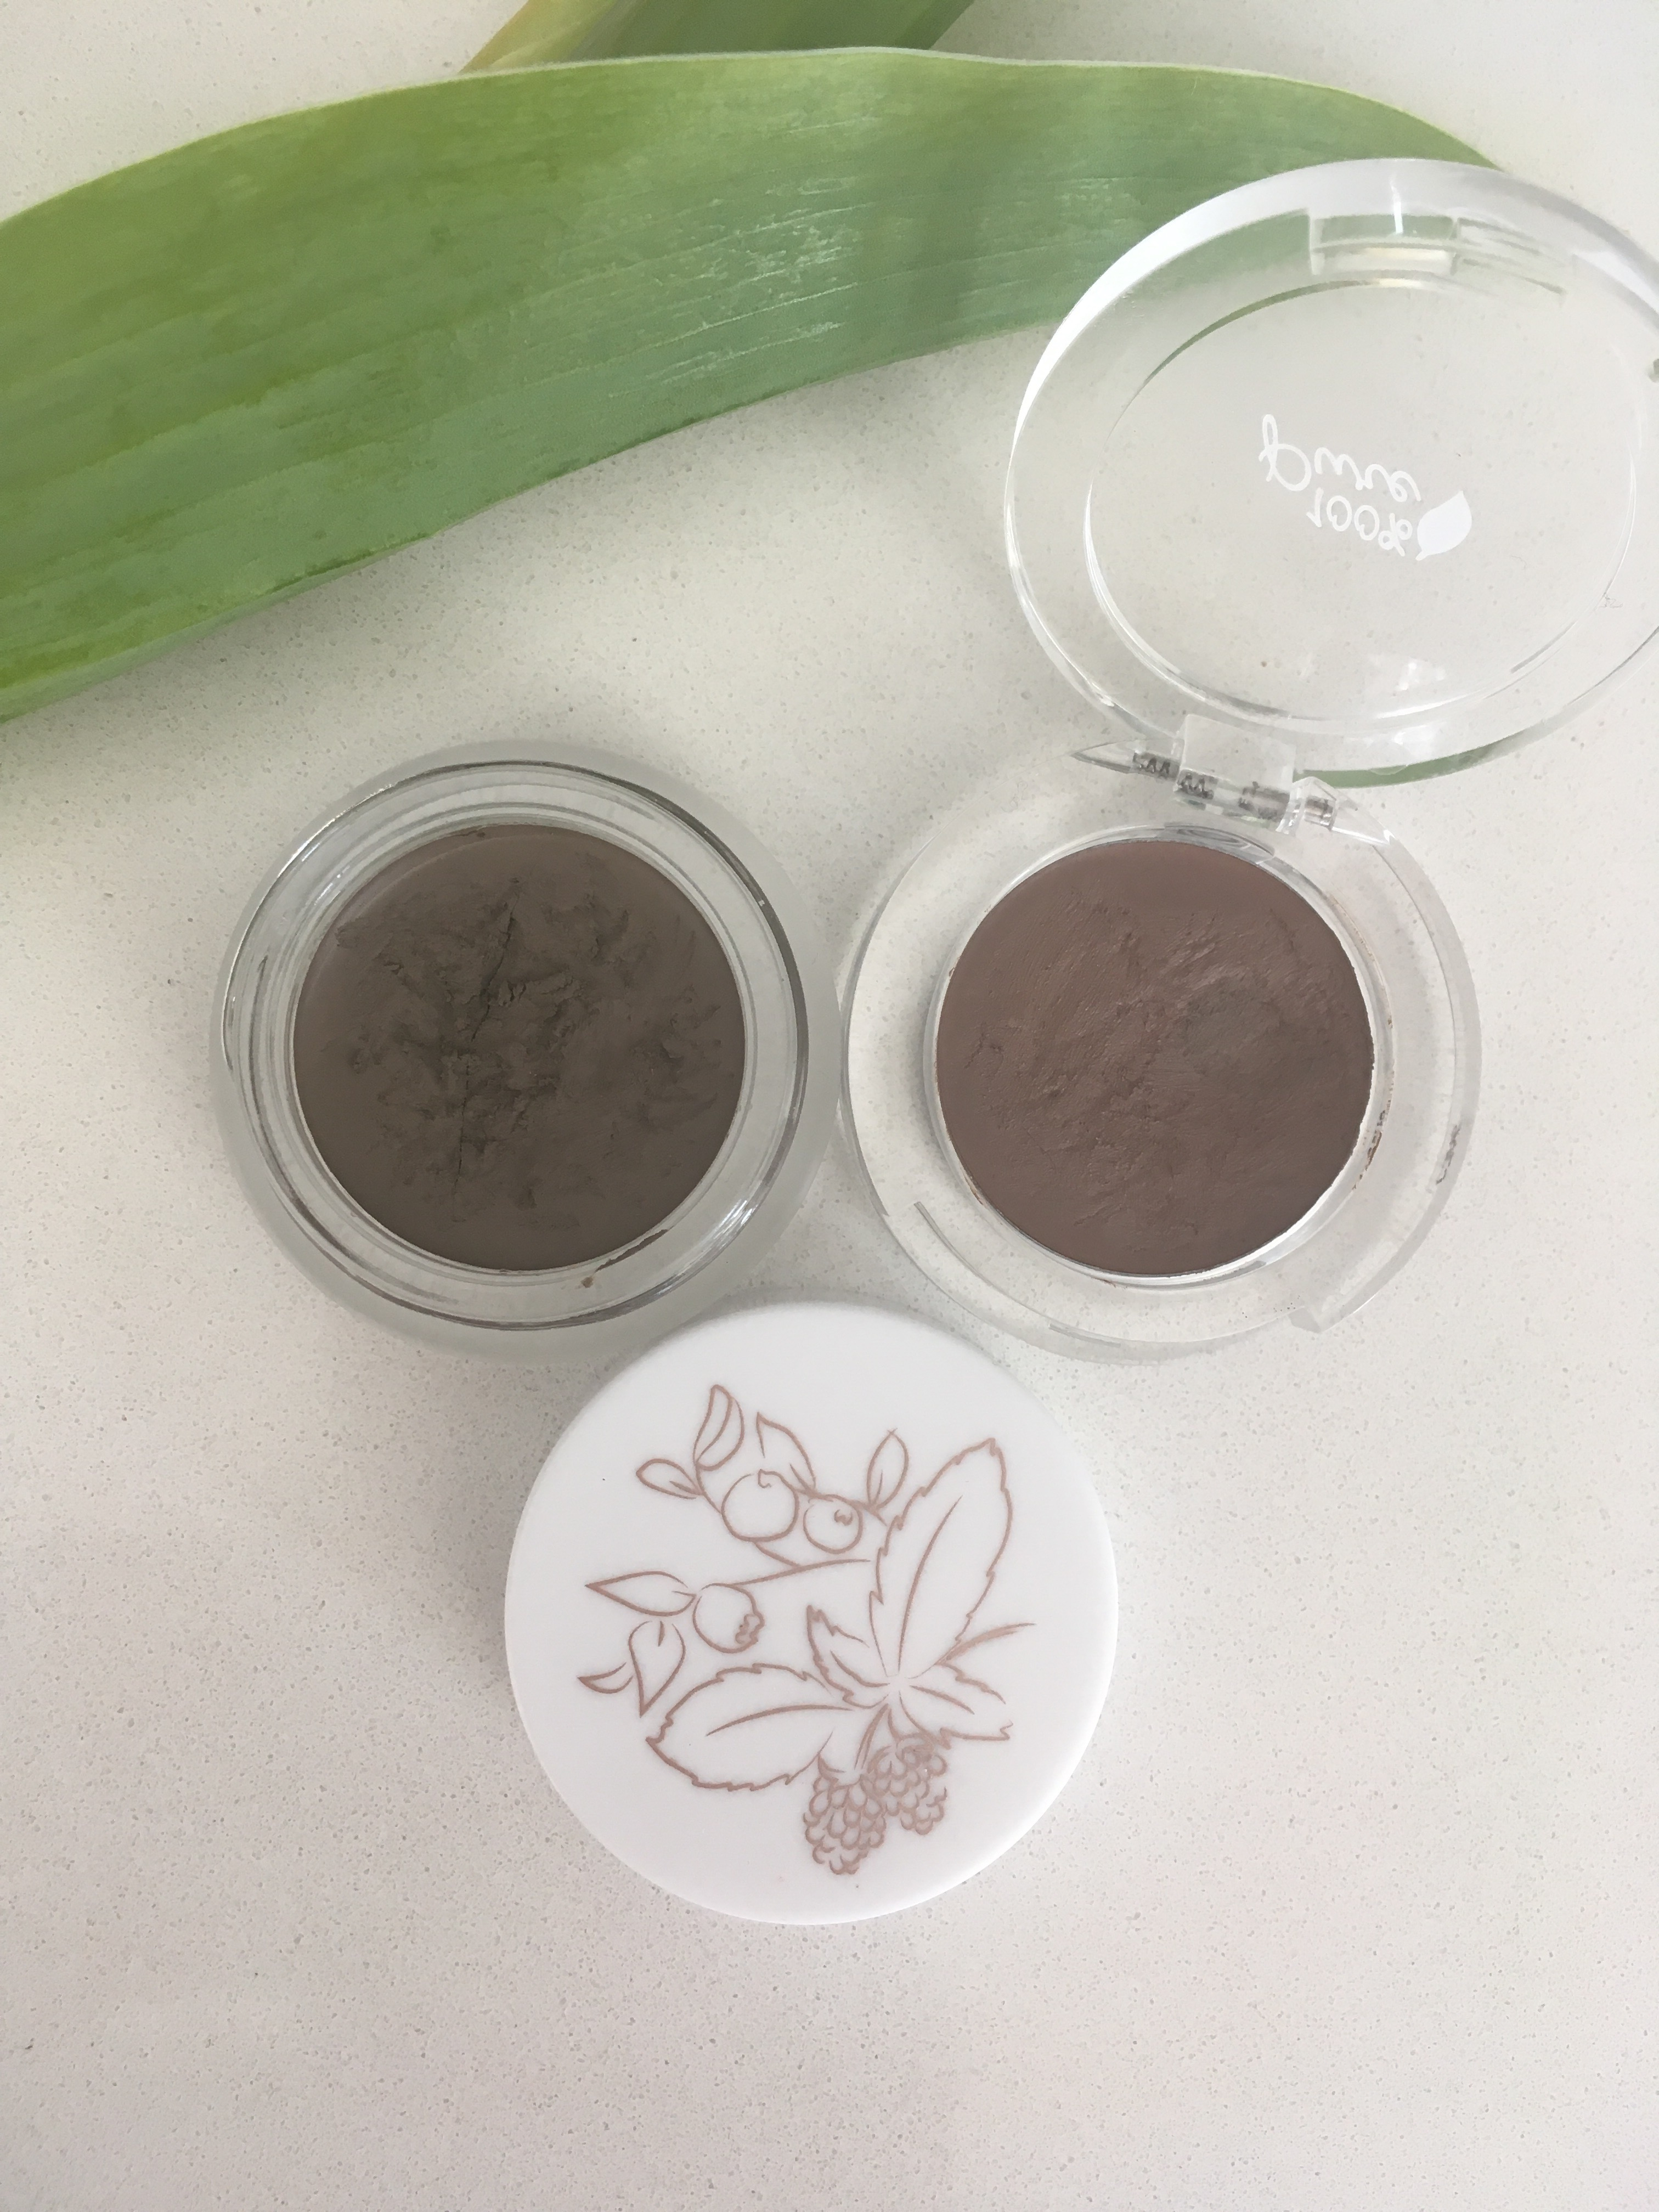 100 Pure Brow Products Review And Comparison Dirty Top Knots And